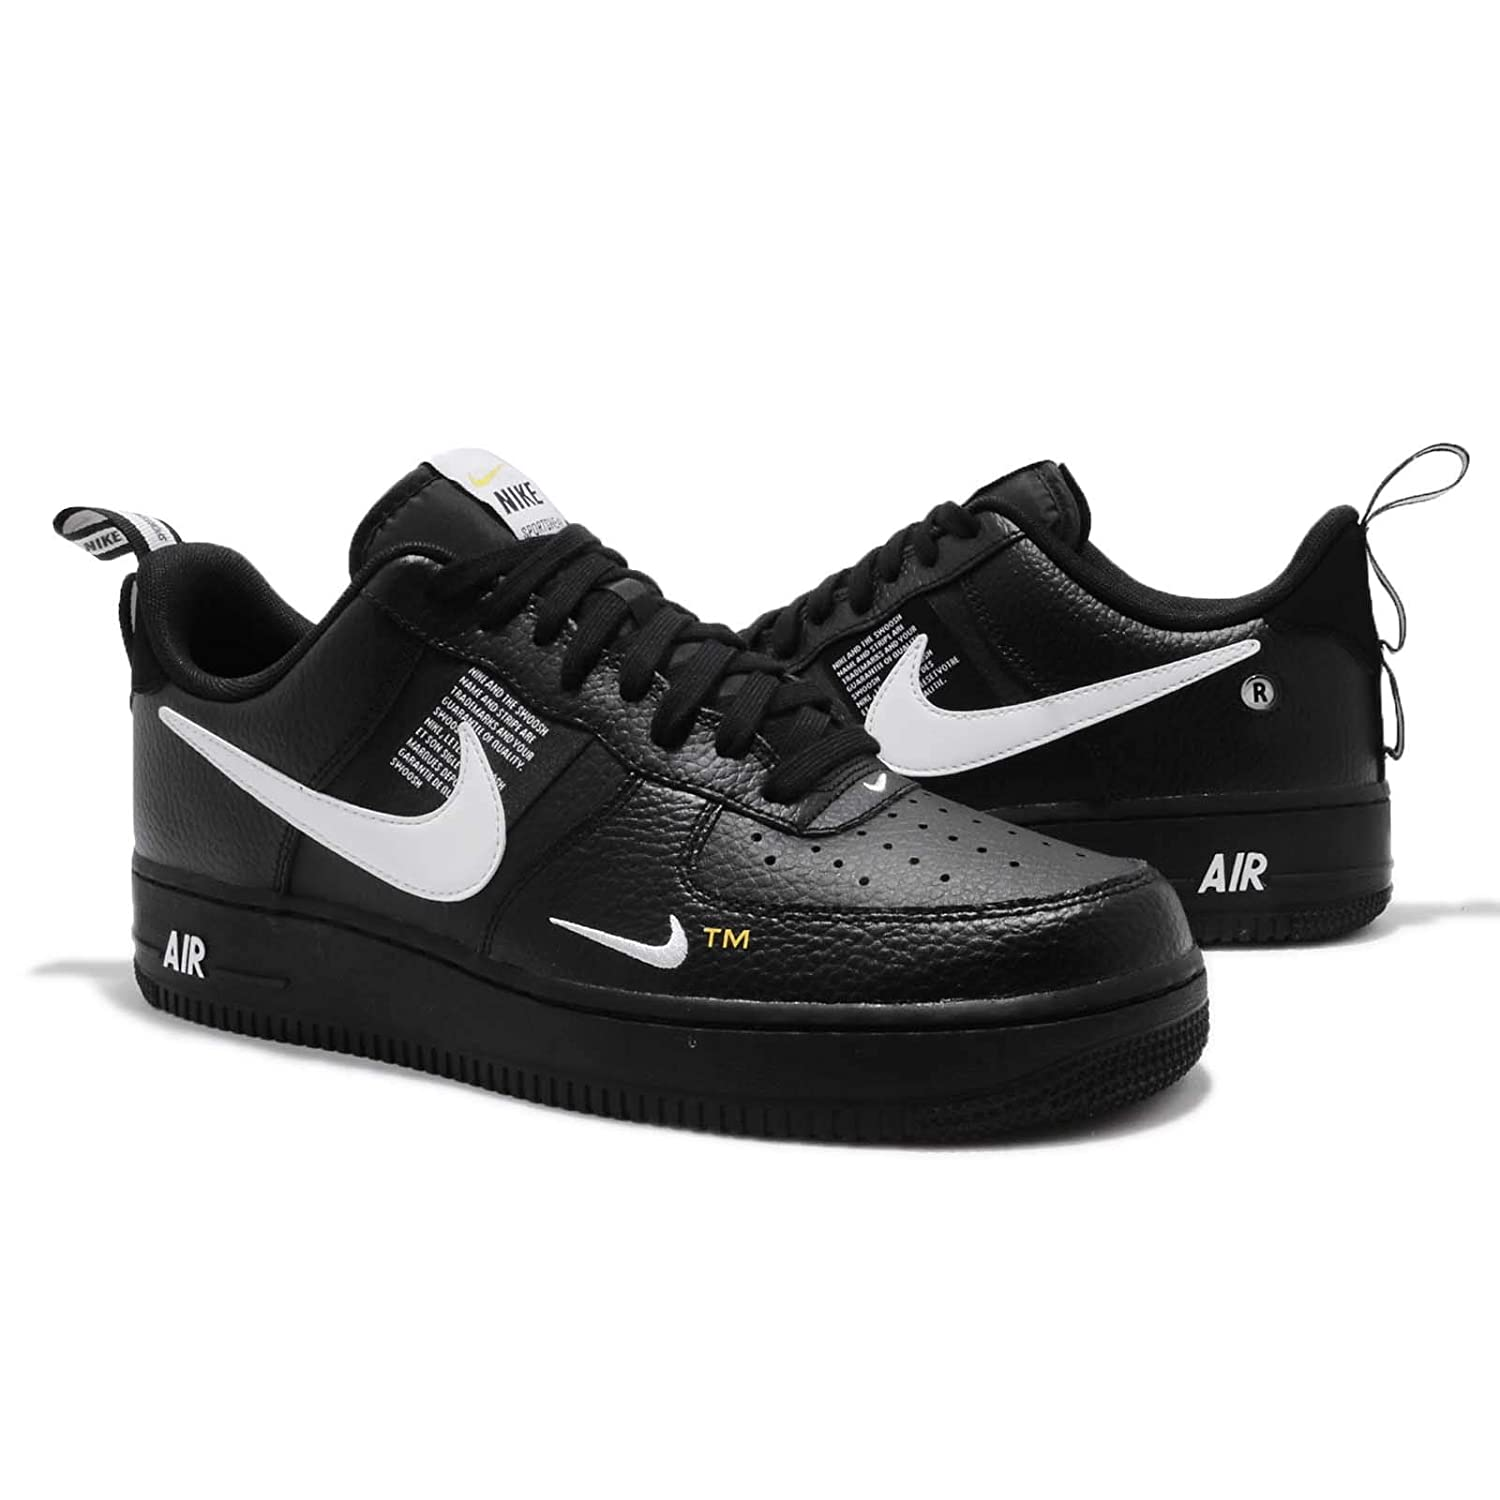 info for d17a7 e6b3f Clothing, Shoes   Accessories Men s Shoes Nike Air Force 1 07 LV8 Utility  Black White Mens AF1 Fashion Sneakers AJ7747-001